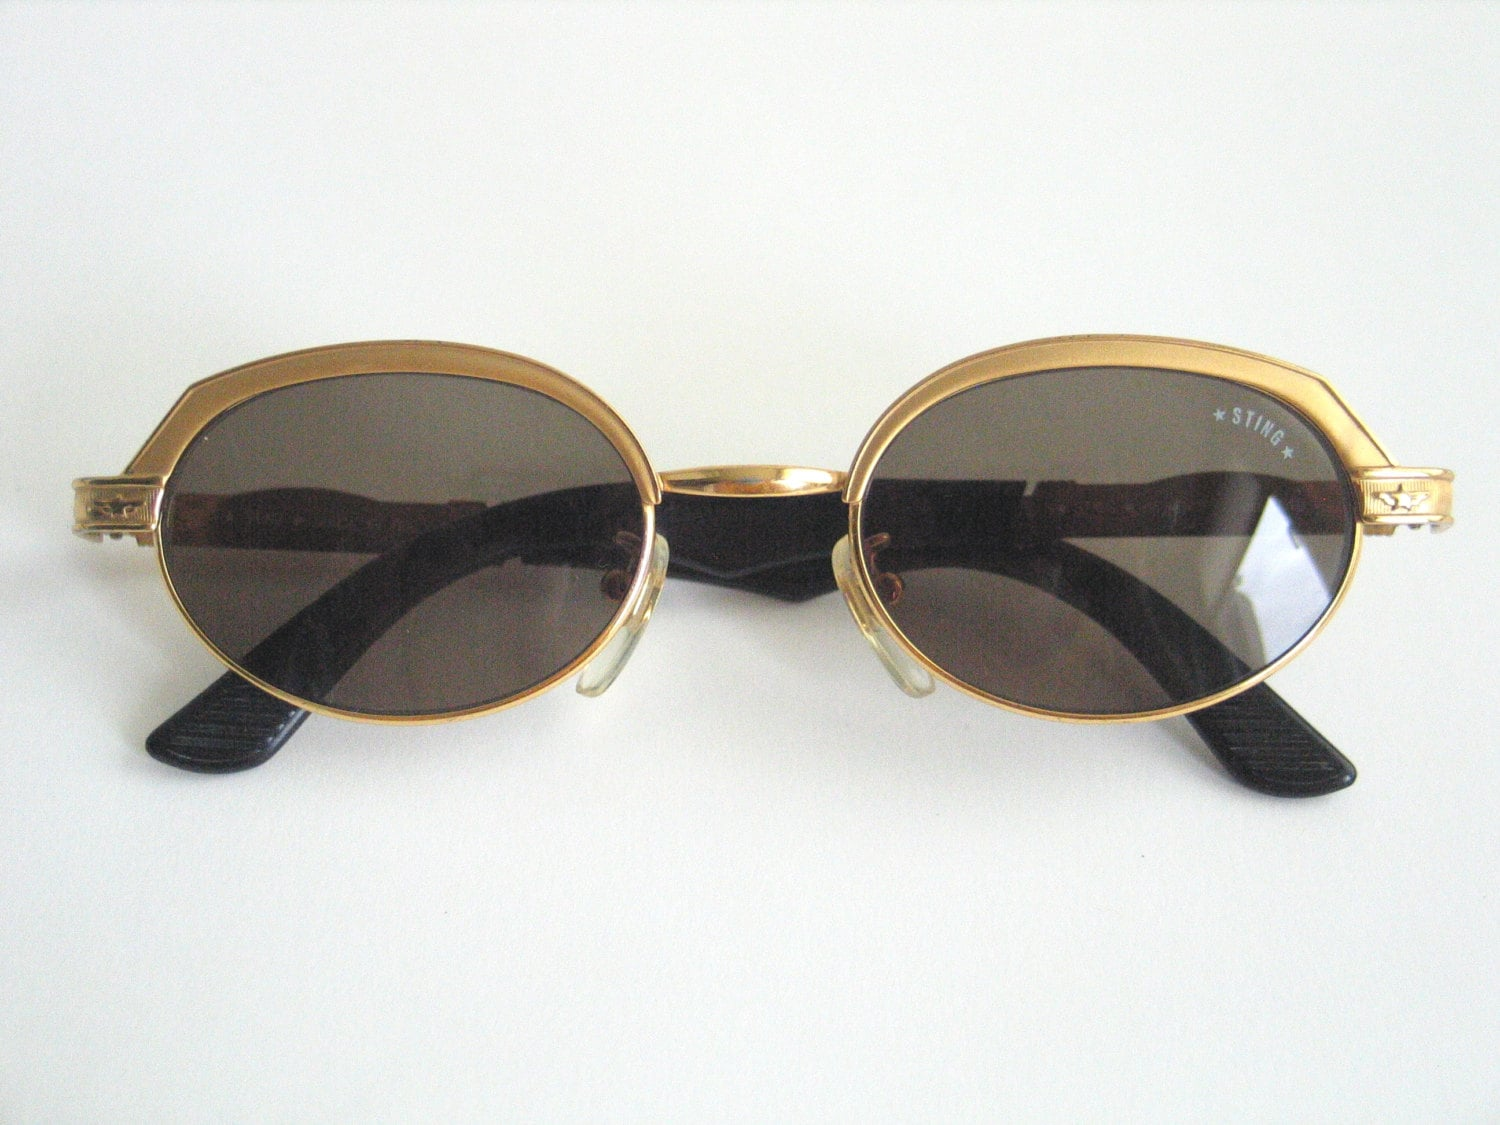 Sting vintage unisex sunglasses. Gold frame and grey-brown